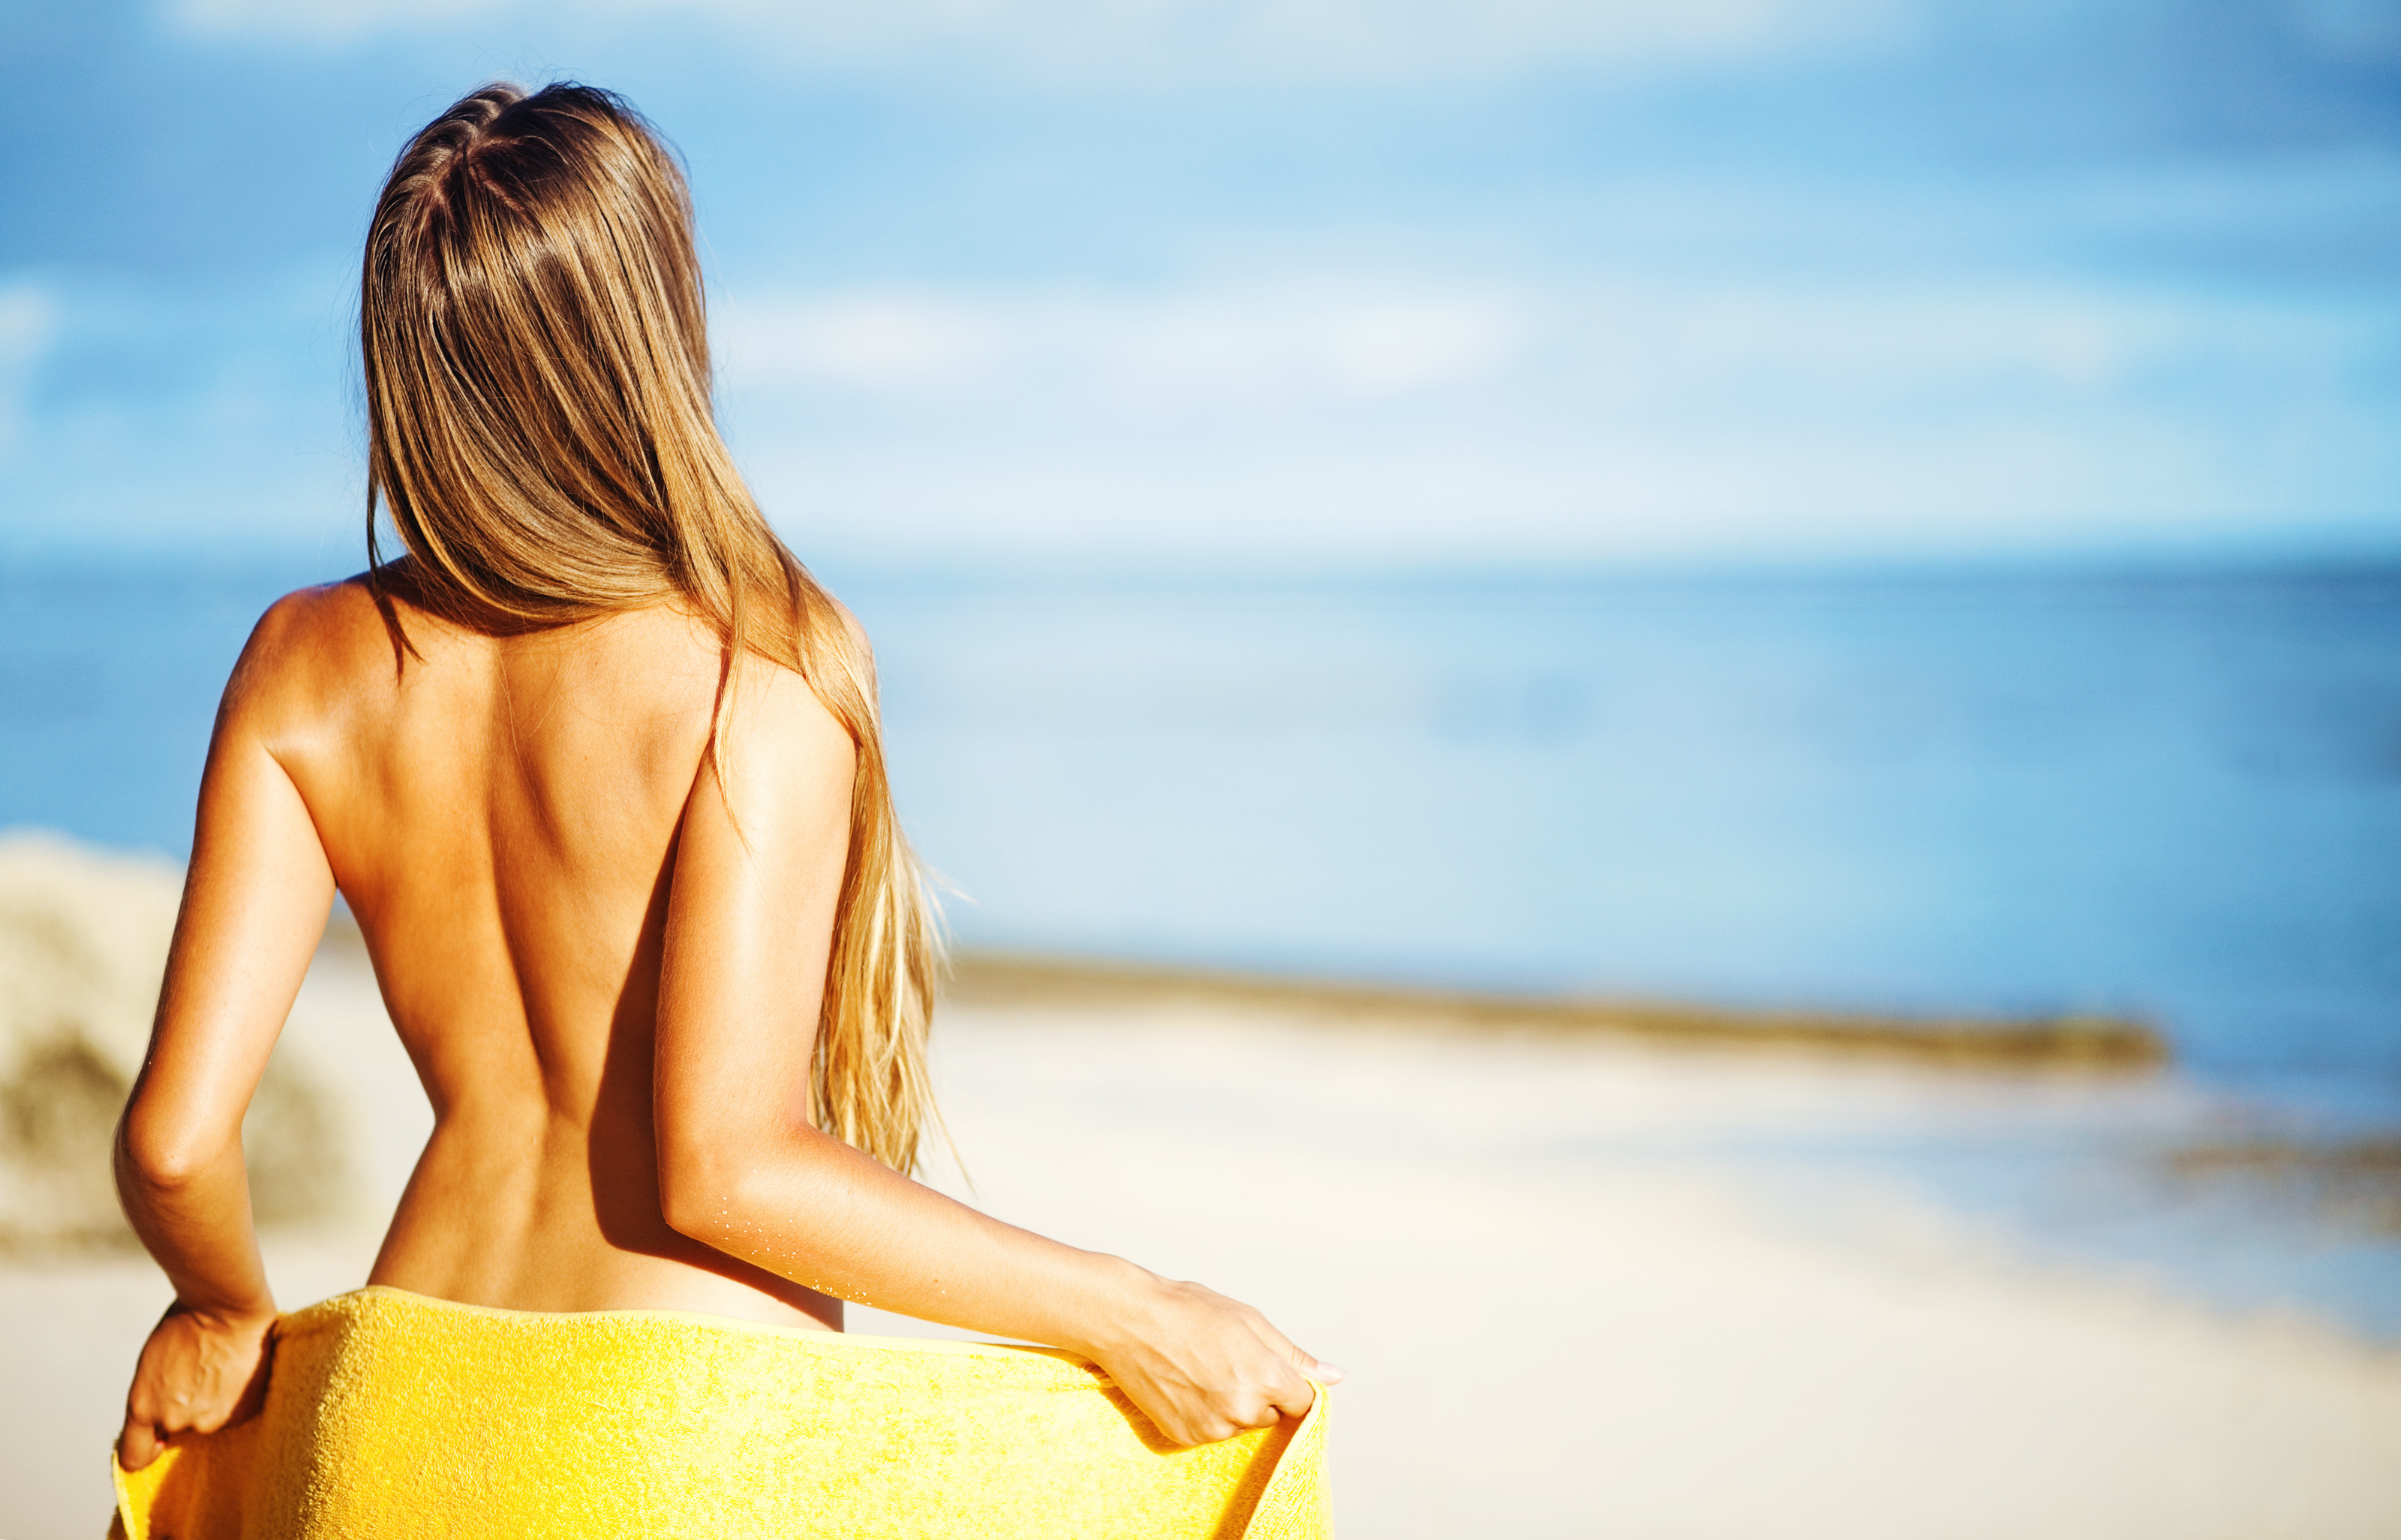 Best topless beaches in europe